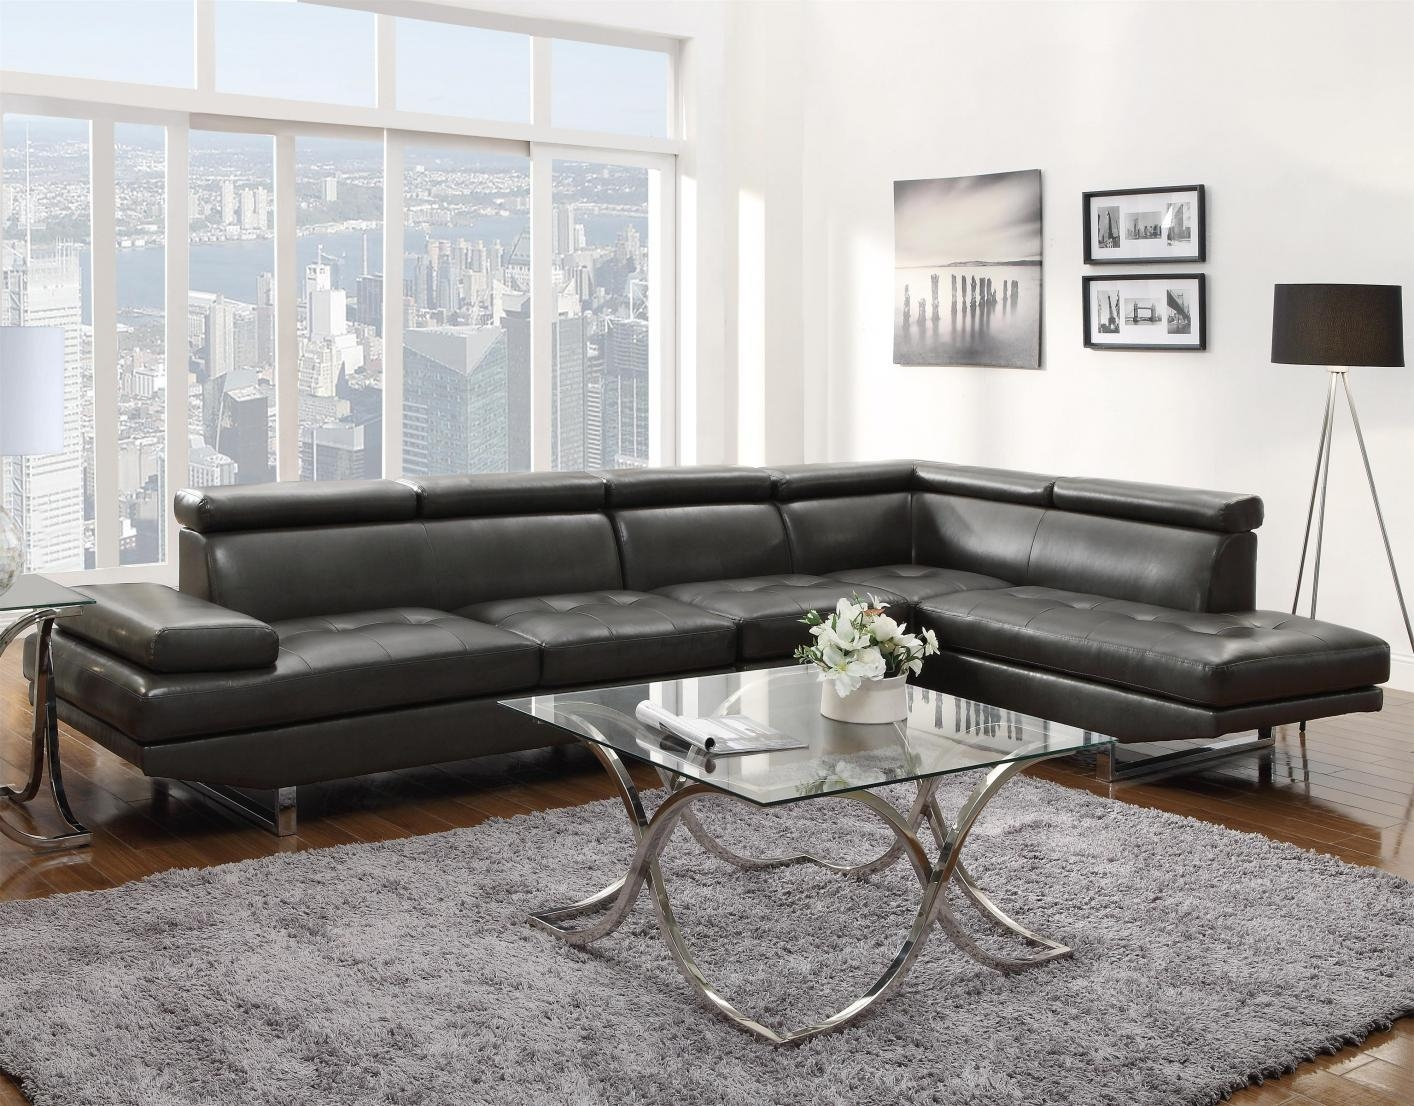 Grey Leather Sectional Sofa – Steal A Sofa Furniture Outlet Los In Gray Leather Sectional Sofas (Image 14 of 21)